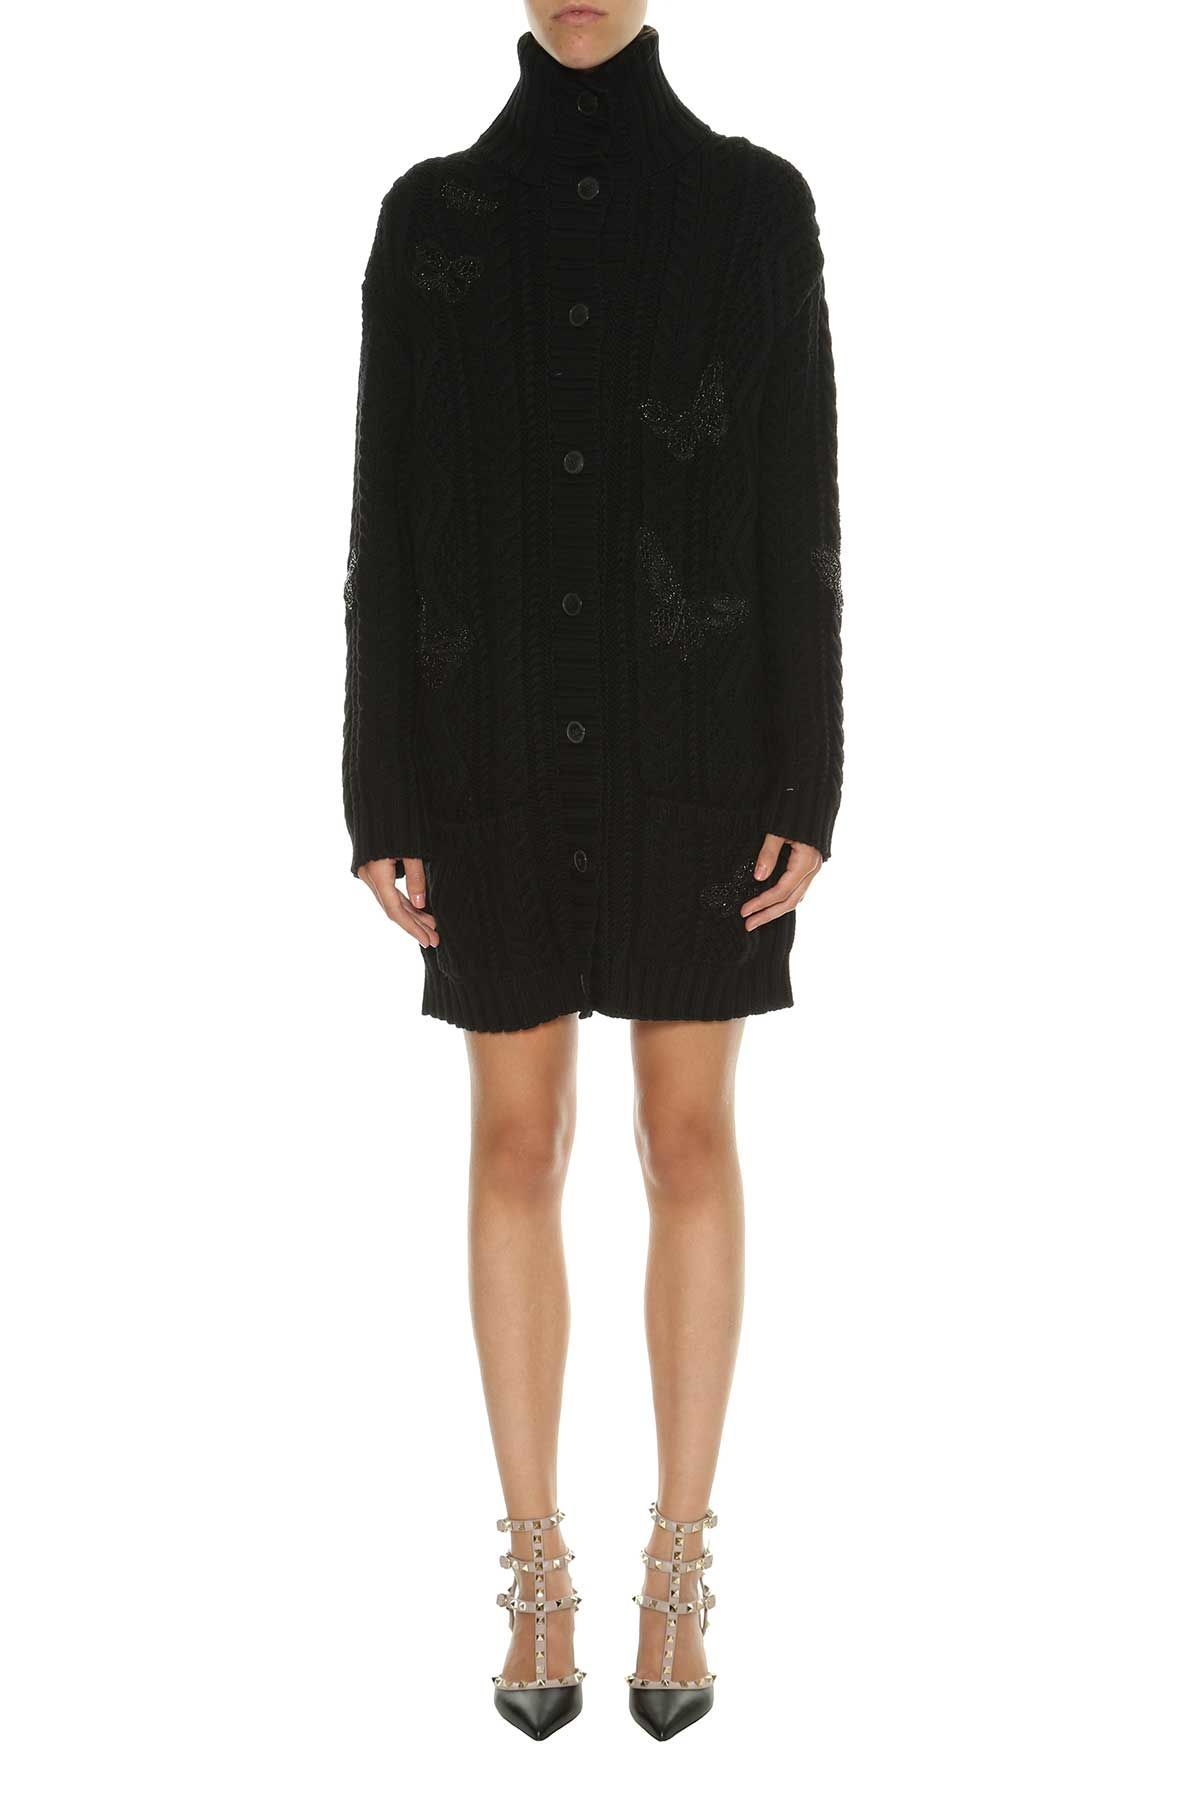 Valentino Knitted Wool Coat With Patches